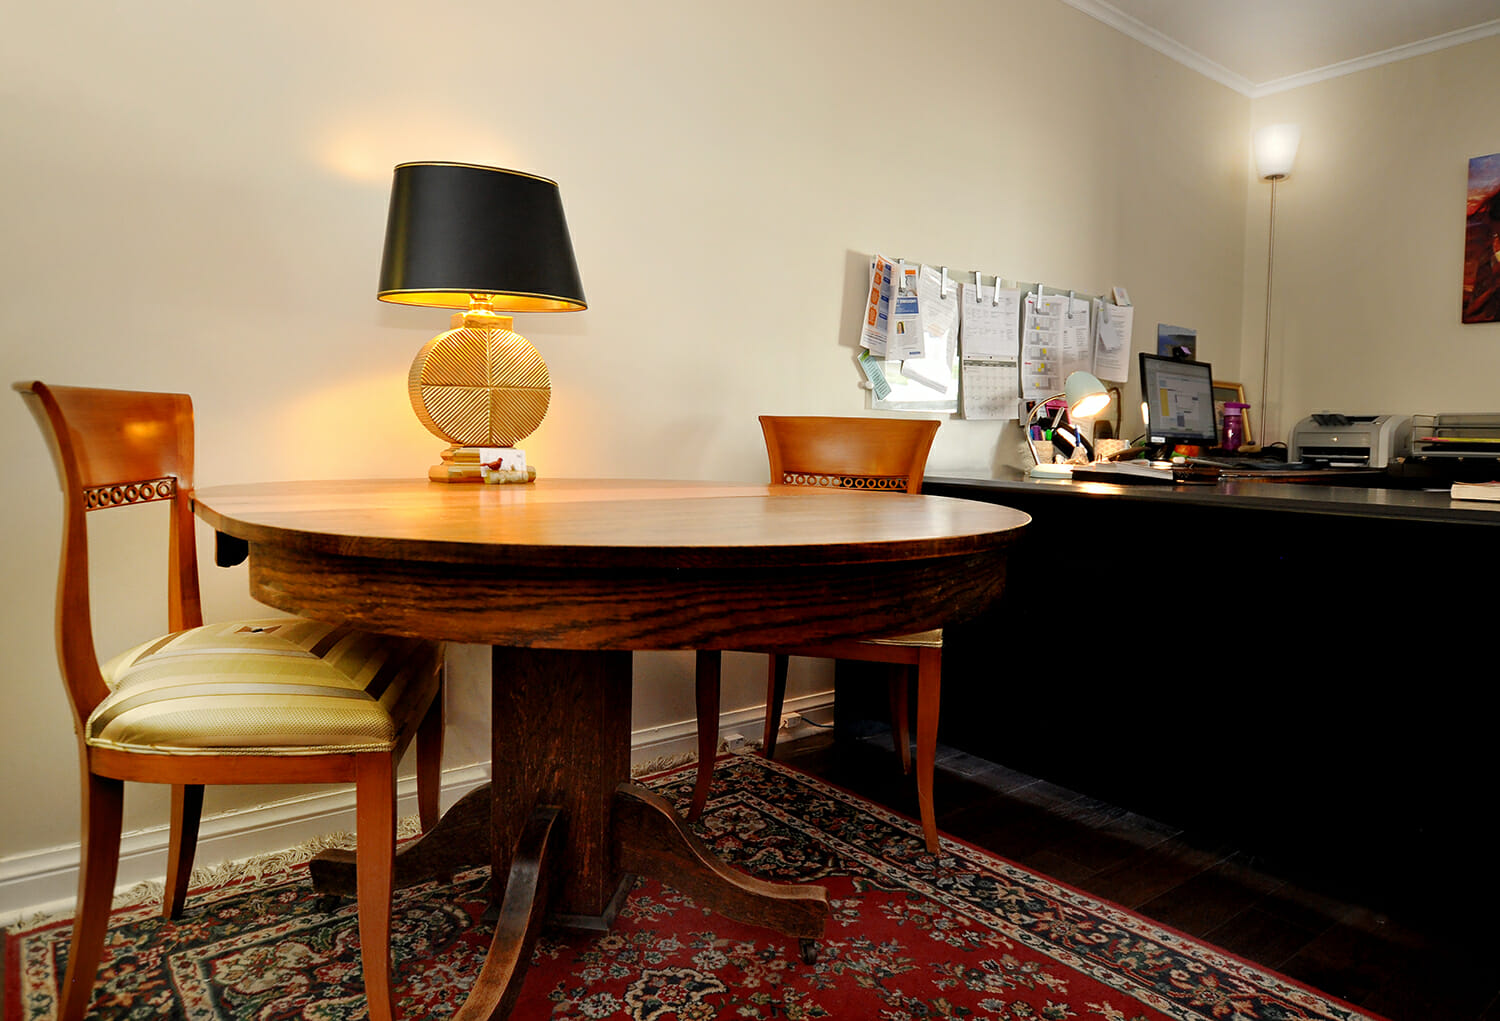 Table, lamp and desk in Munro Centre office.